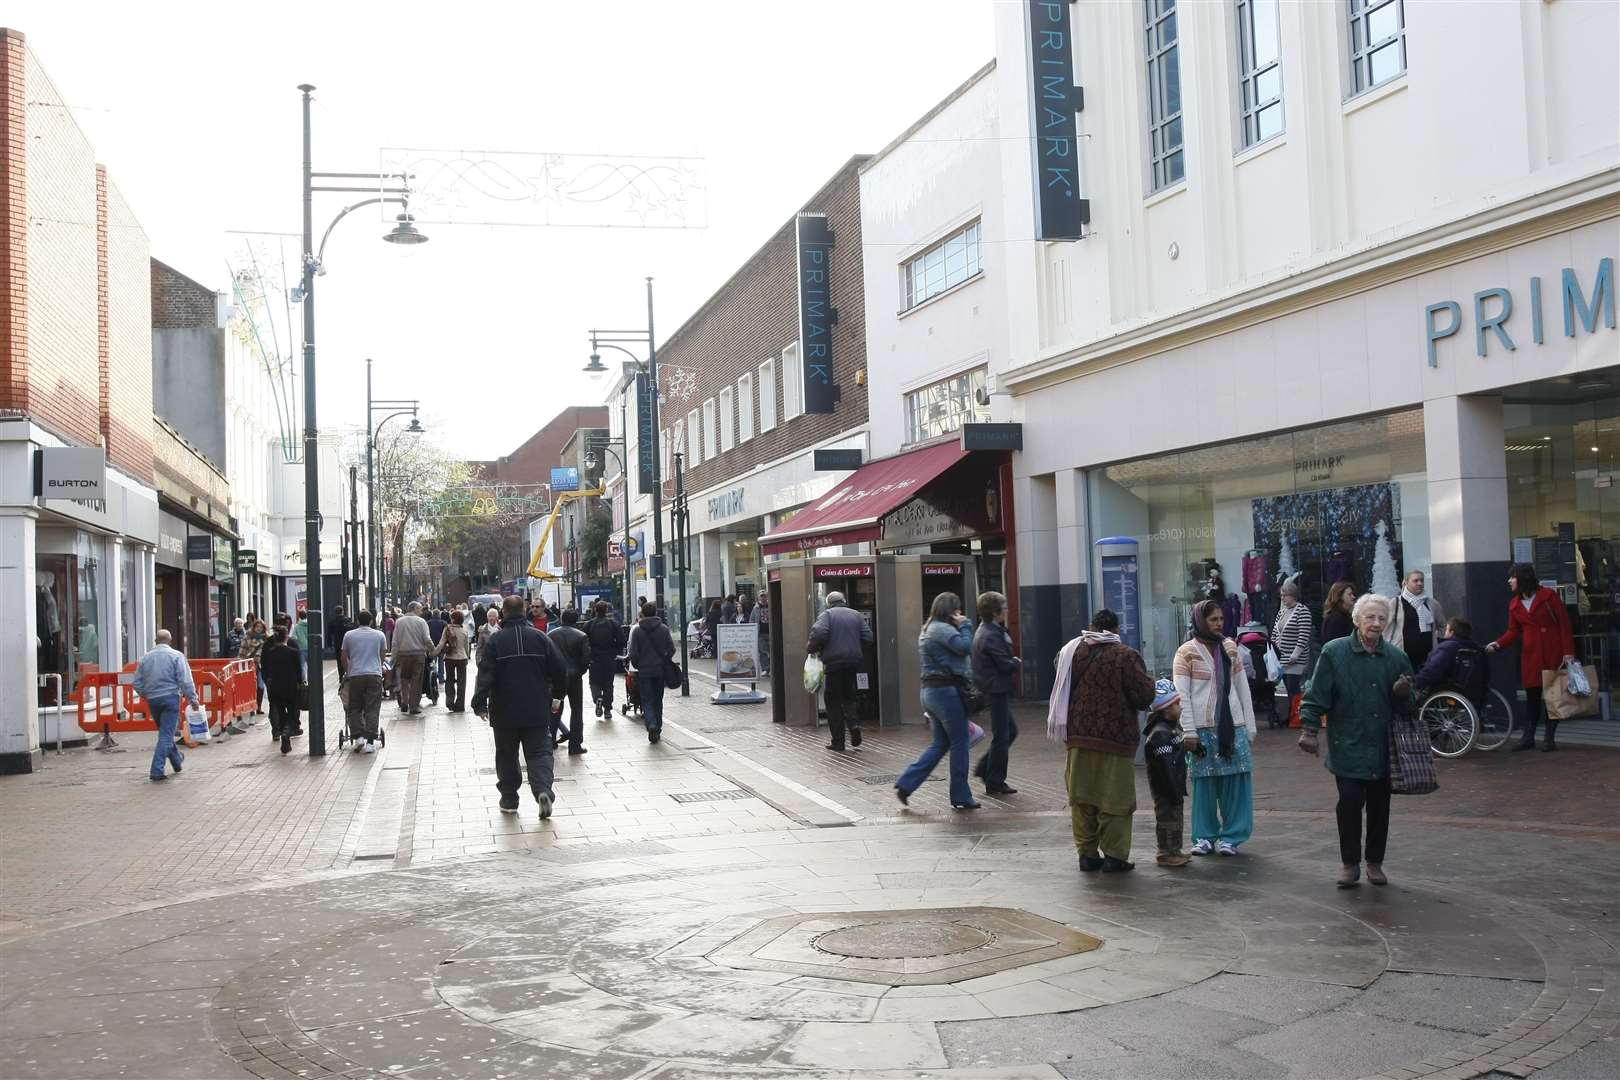 Scenes from Chatham town centre.